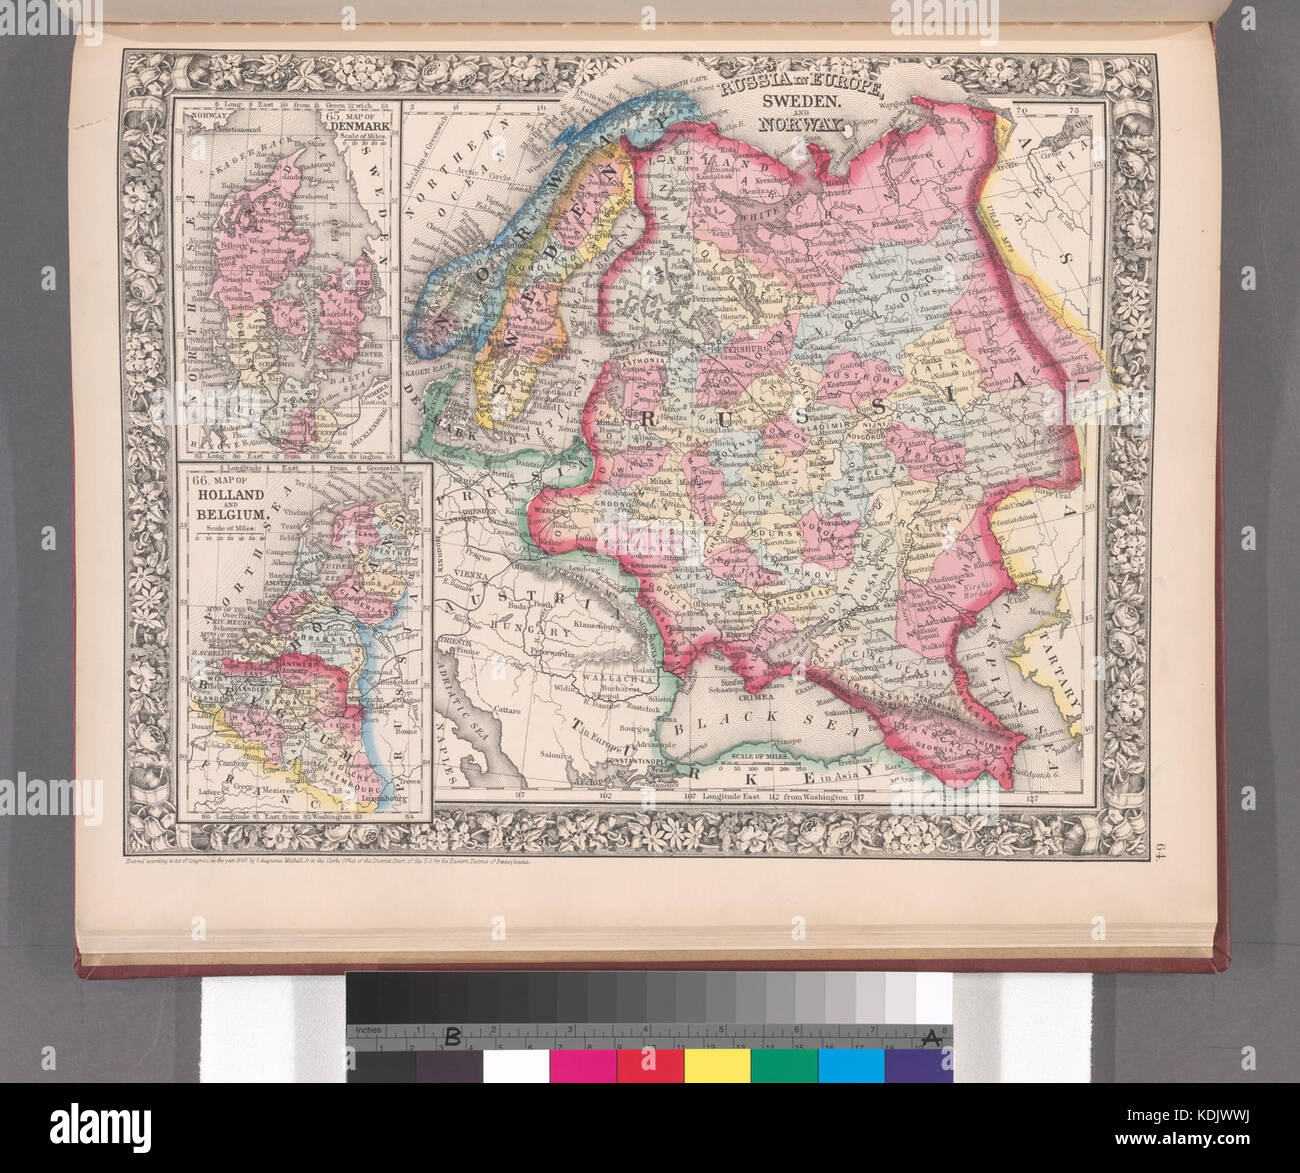 Russia In Europe Sweden And Norway Map Of Denmark Map Of - Sweden holland map